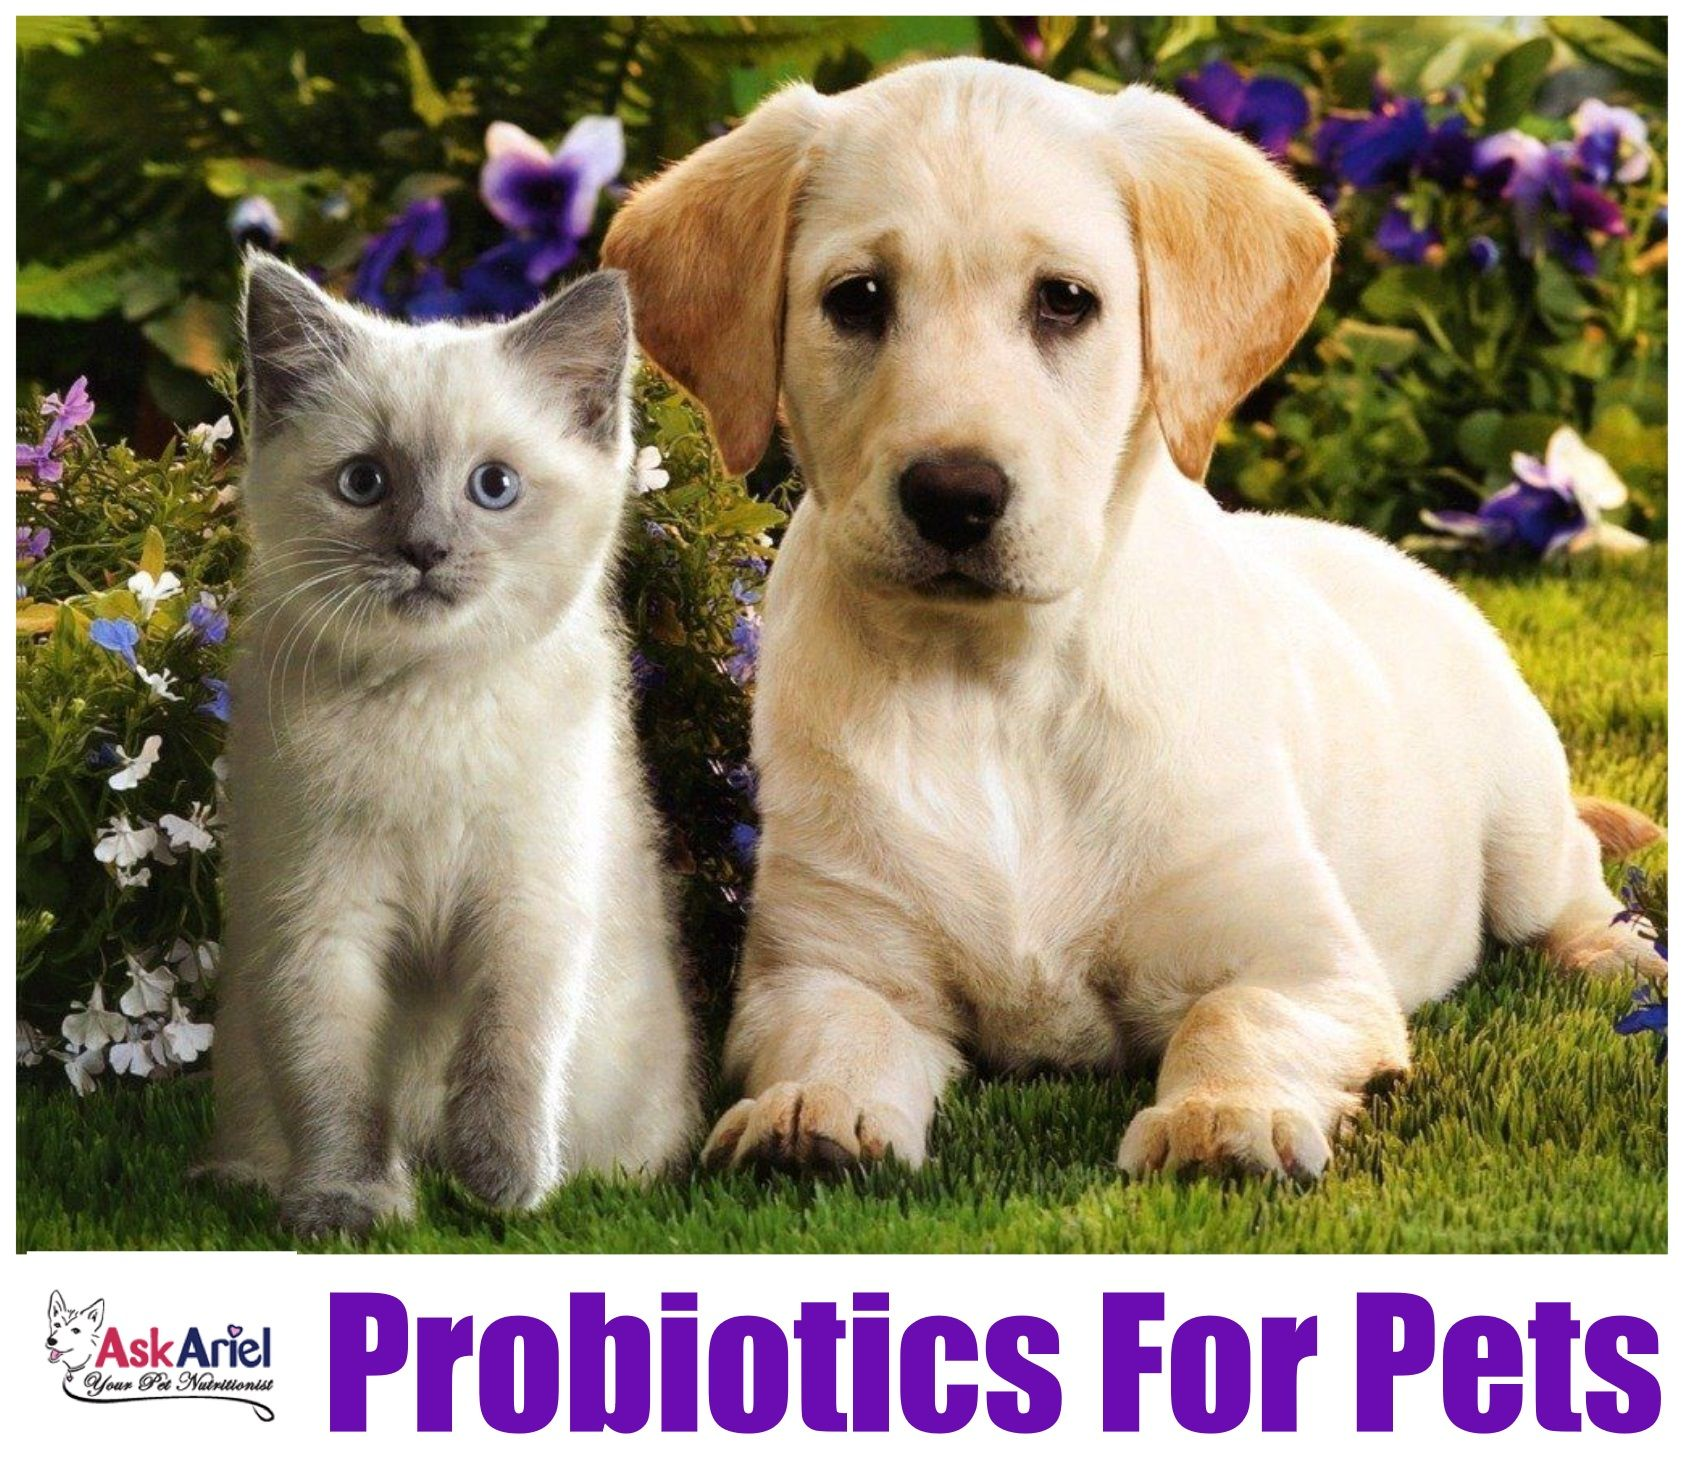 Natural Probiotics For Dogs Cats Ask Ariel Cute Puppy Wallpaper Cute Puppies And Kittens Kittens And Puppies